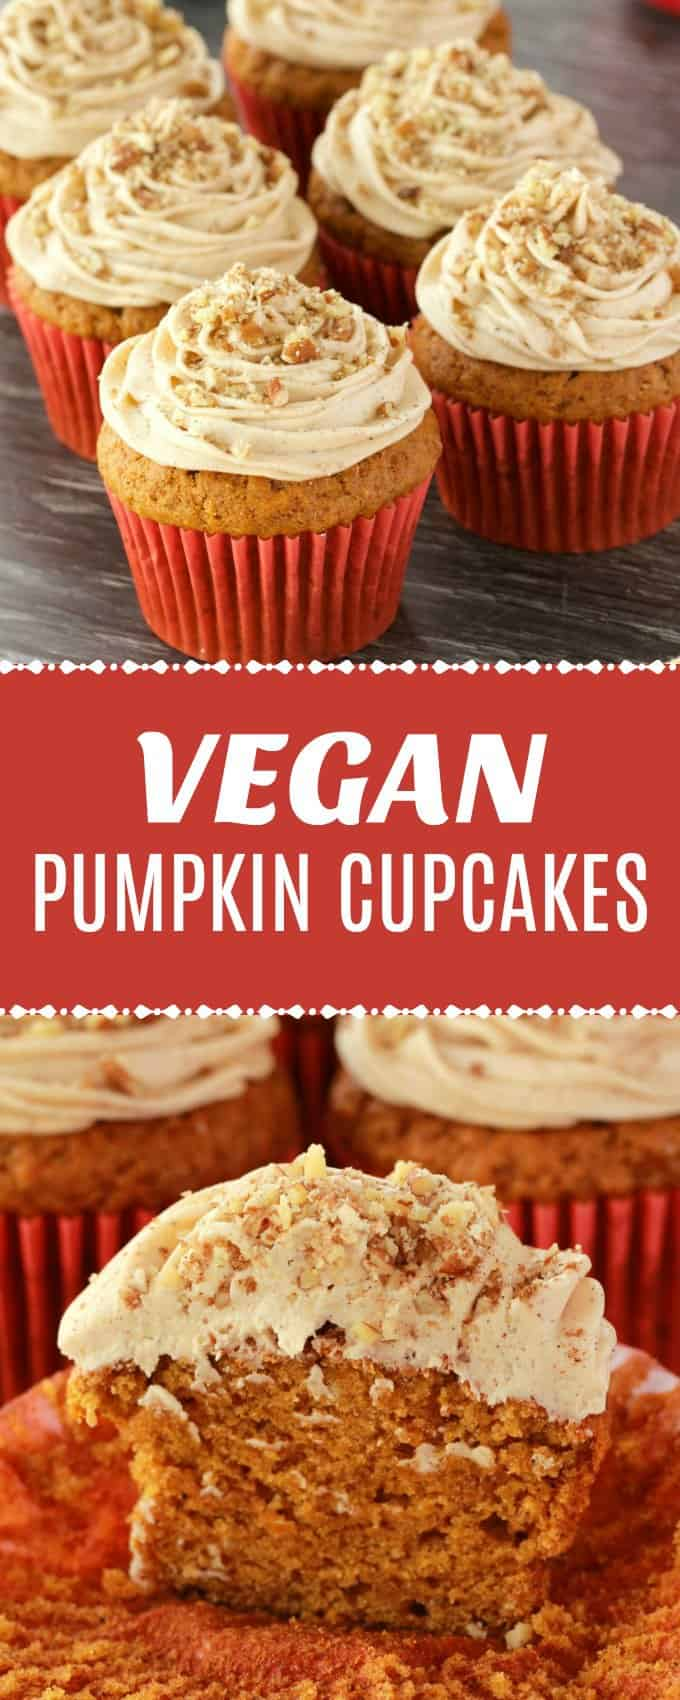 Rich, moist and tall vegan pumpkin cupcakes topped with a velvety pumpkin spice frosting and crushed pecans. Beautifully colorful and fall inspired. | lovingitvegan.com